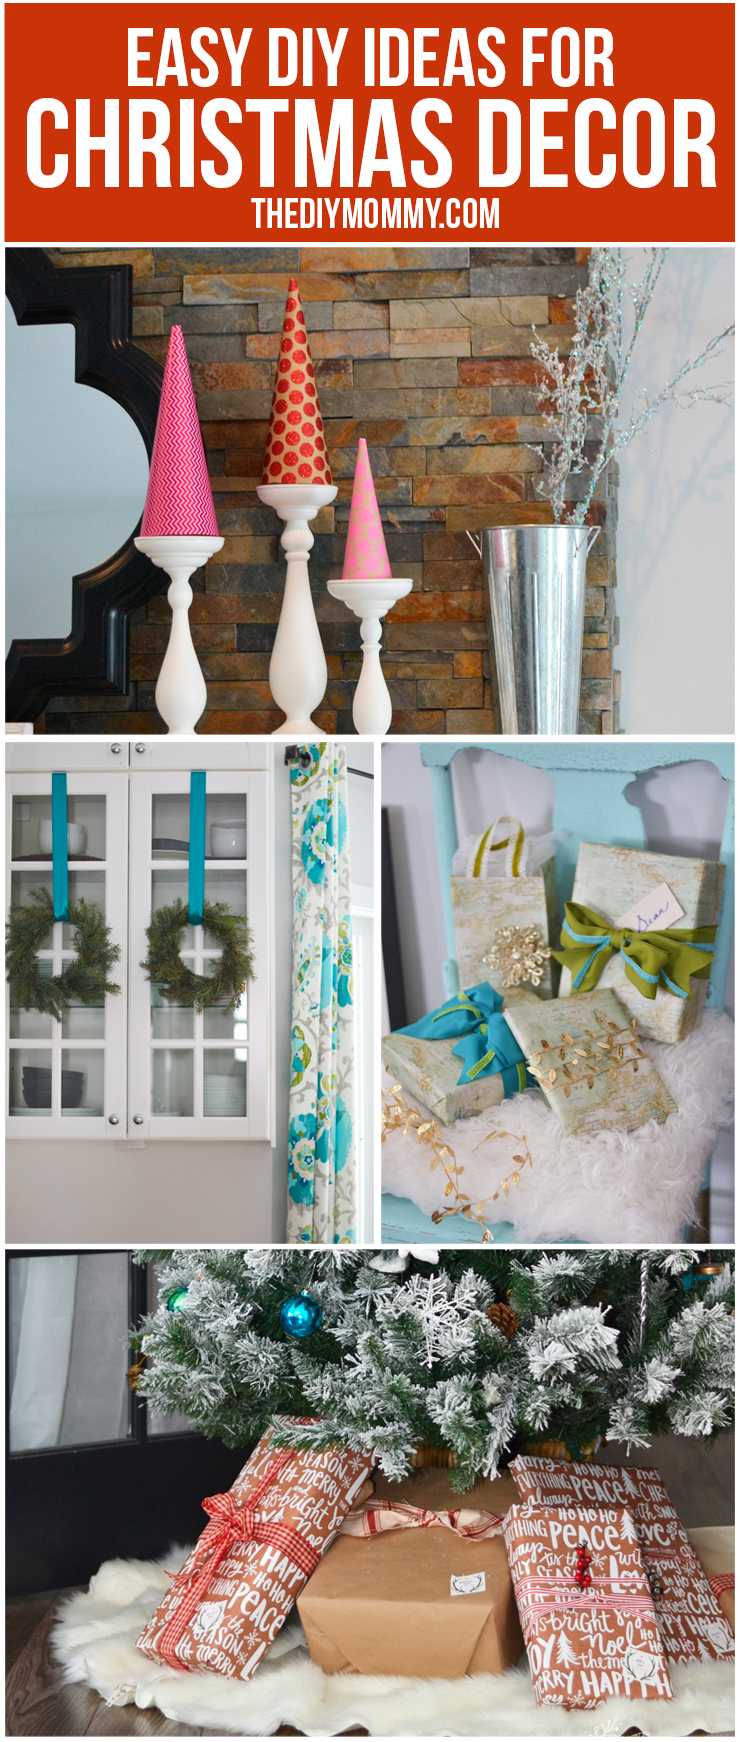 Easy DIY Ideas for Christmas Decor